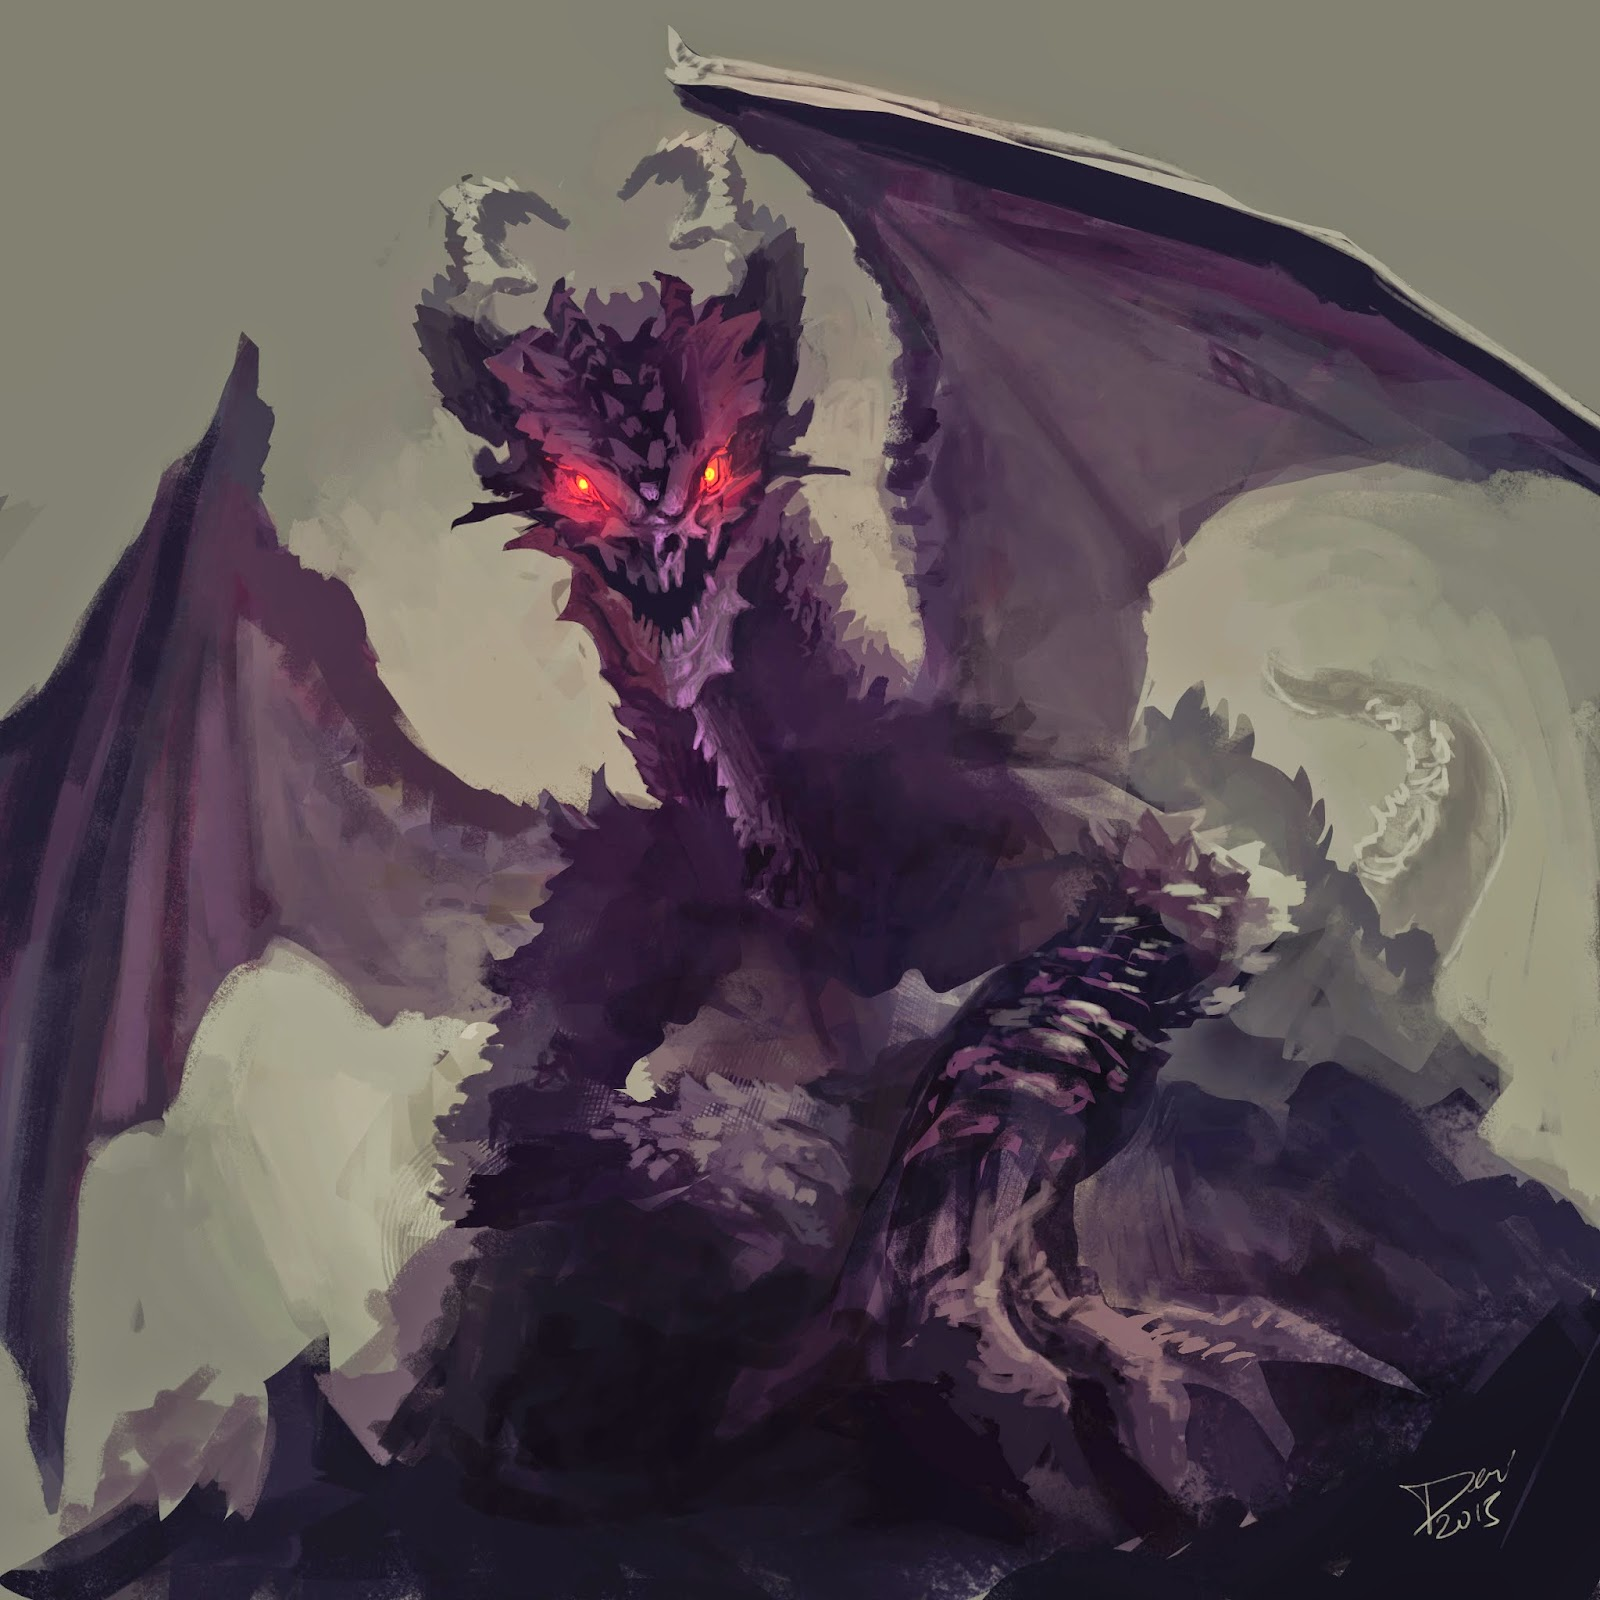 dragon, conceptart, monster, scifi, douglas deri, giant dragon, purple dragon, fire, fantasy, zbrush, maya, character design, creature design, sketchbook, book, lizardillustration, game, rpg, ilustracao, desenho, draw, how to paint, photoshop brushes, brushes, how to draw, como desenhar,